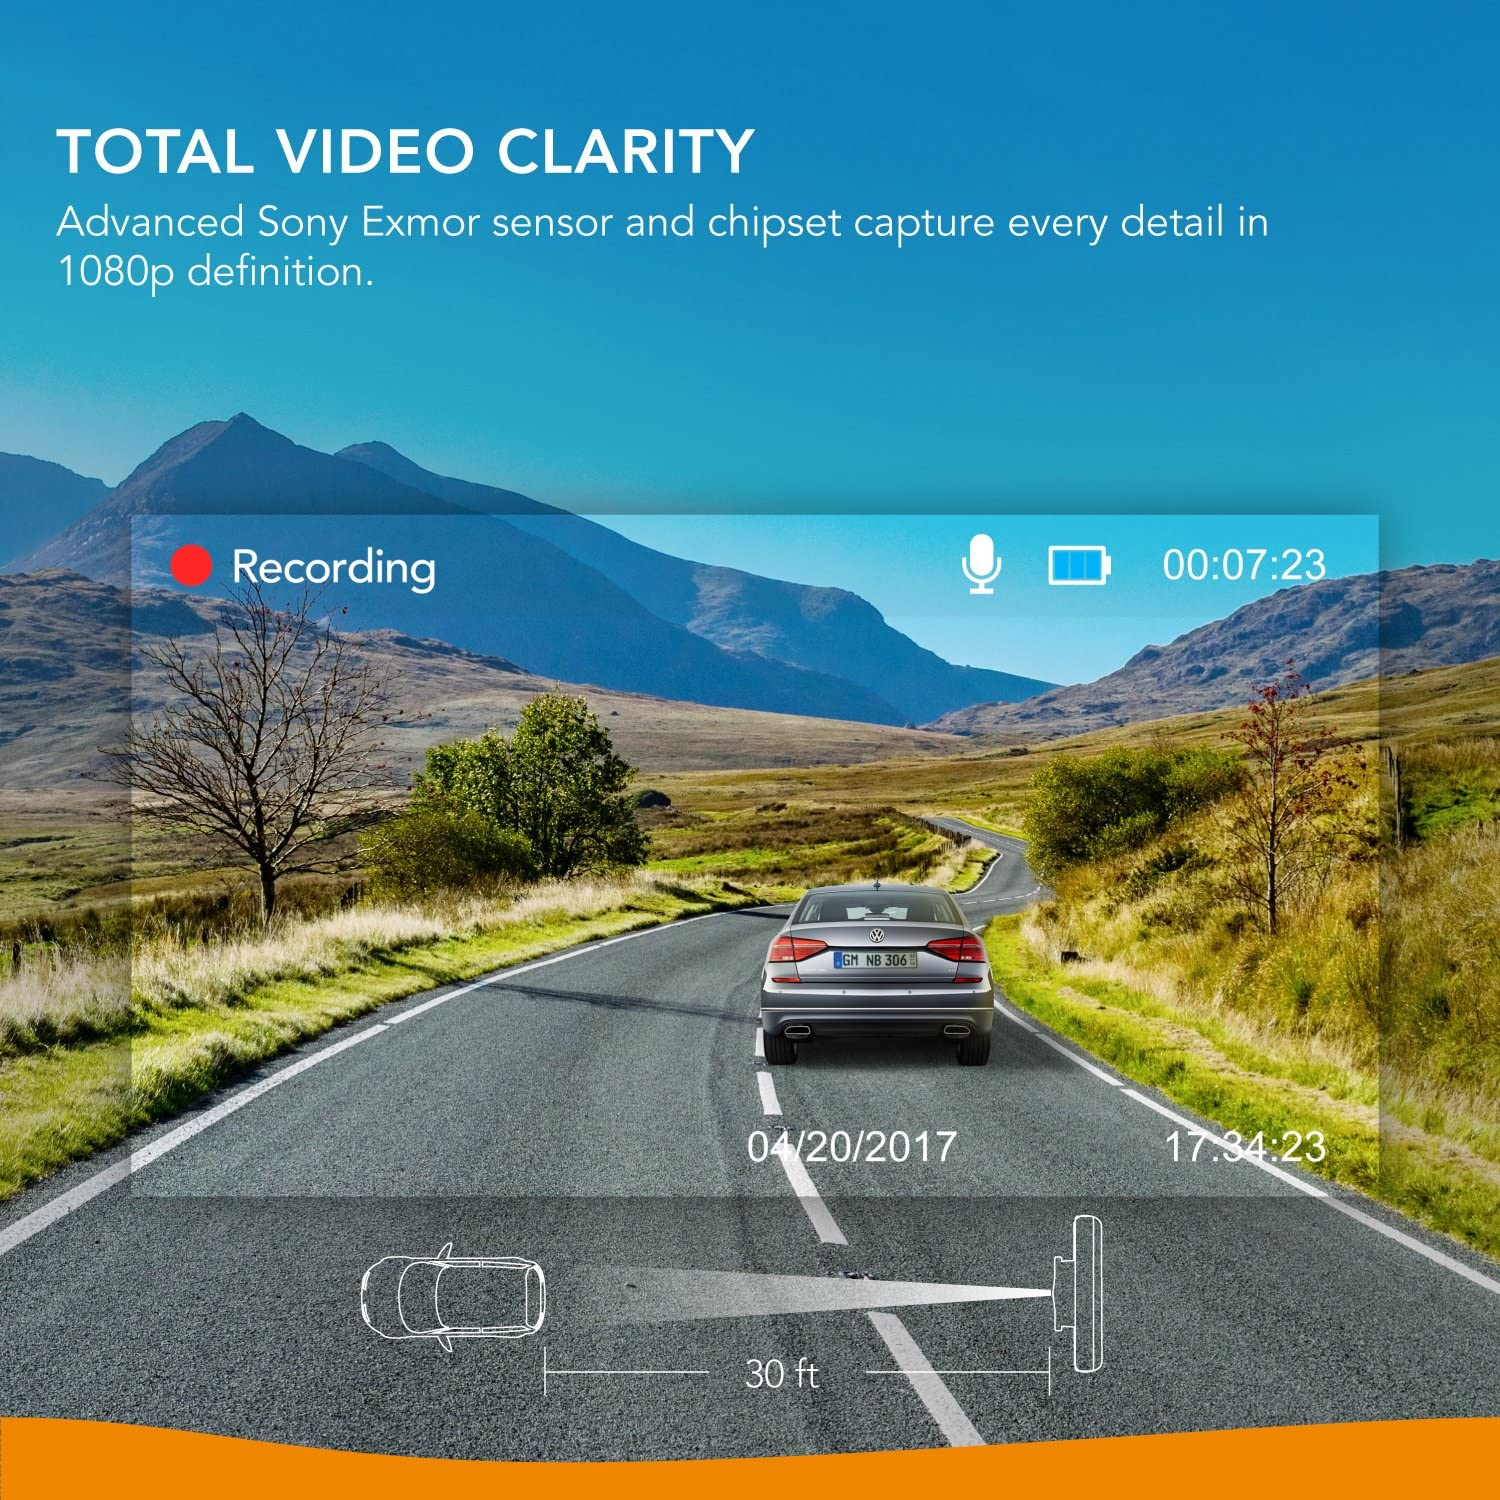 Driving Recorder Loop Recording Dash Cam for Car Anker Roav DashCam A1 Dedicated App Wi-Fi Motion Detection Night Mode Wide Angle Lens WDR Nighthawk Vision G-Sensor 1080p FHD LCD Screen